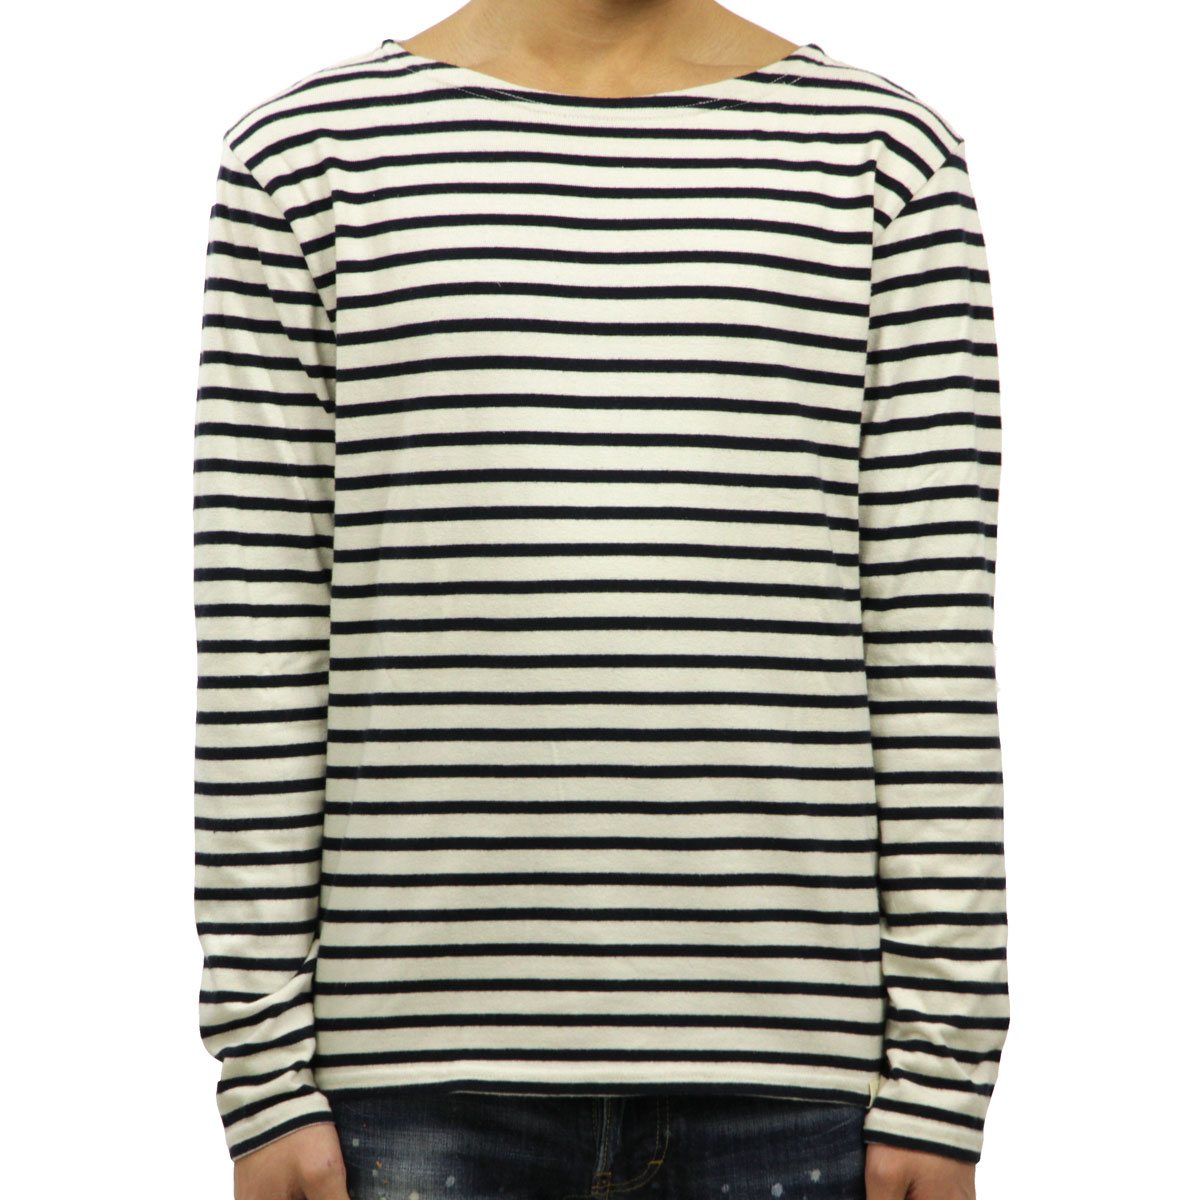 Article T Shirt Neck Ralph Laurenamp; And Men Polo Boat Cotton Supply Sleeves Jersey Regular Long Pullover Denim Striped QBeCrxWdo